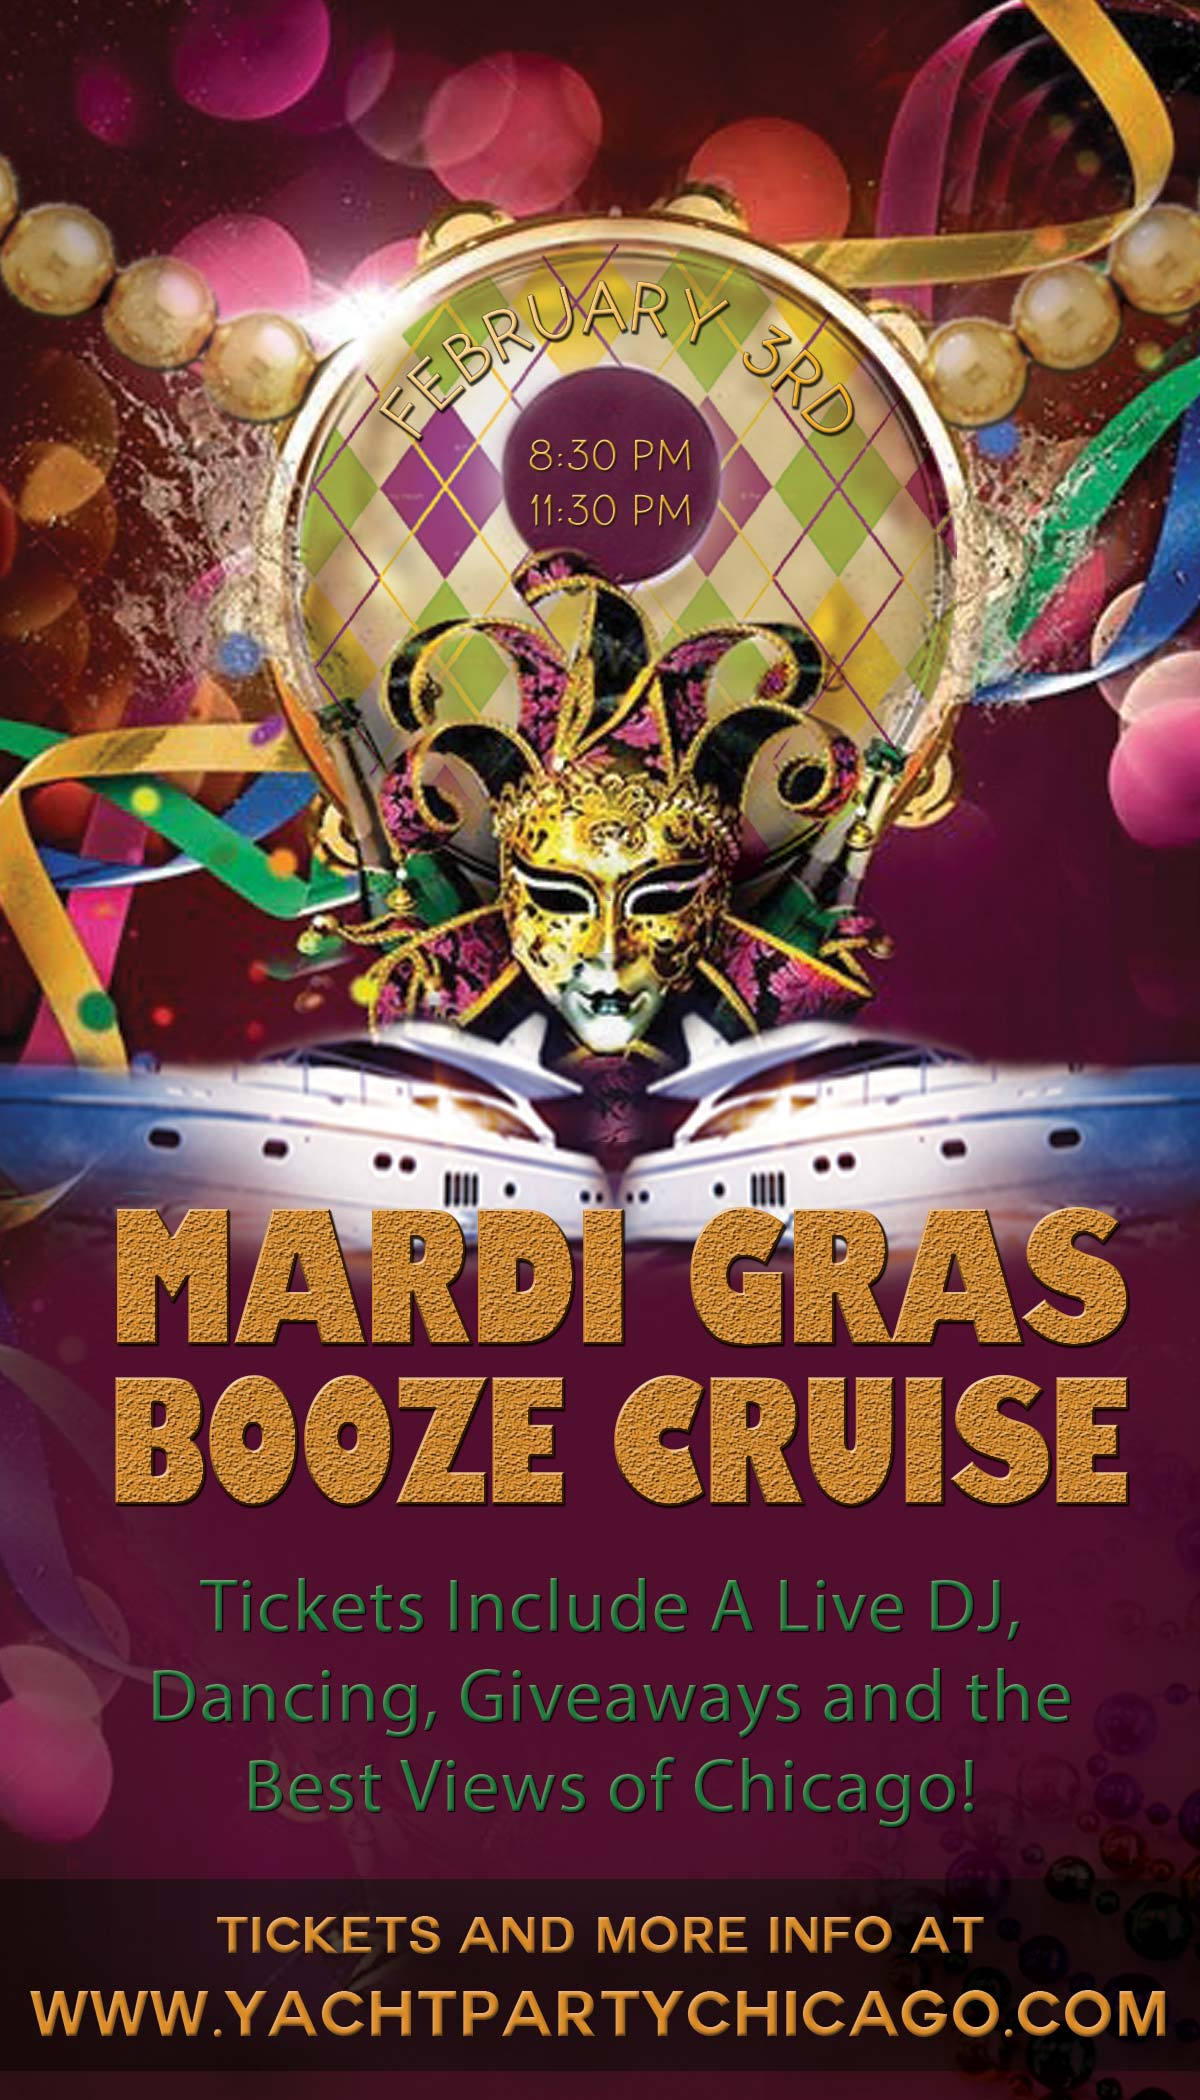 Mardi Gras Booze Cruise Party - Tickets include a Live DJ, Dancing, Giveaways, and the best views of Chicago!